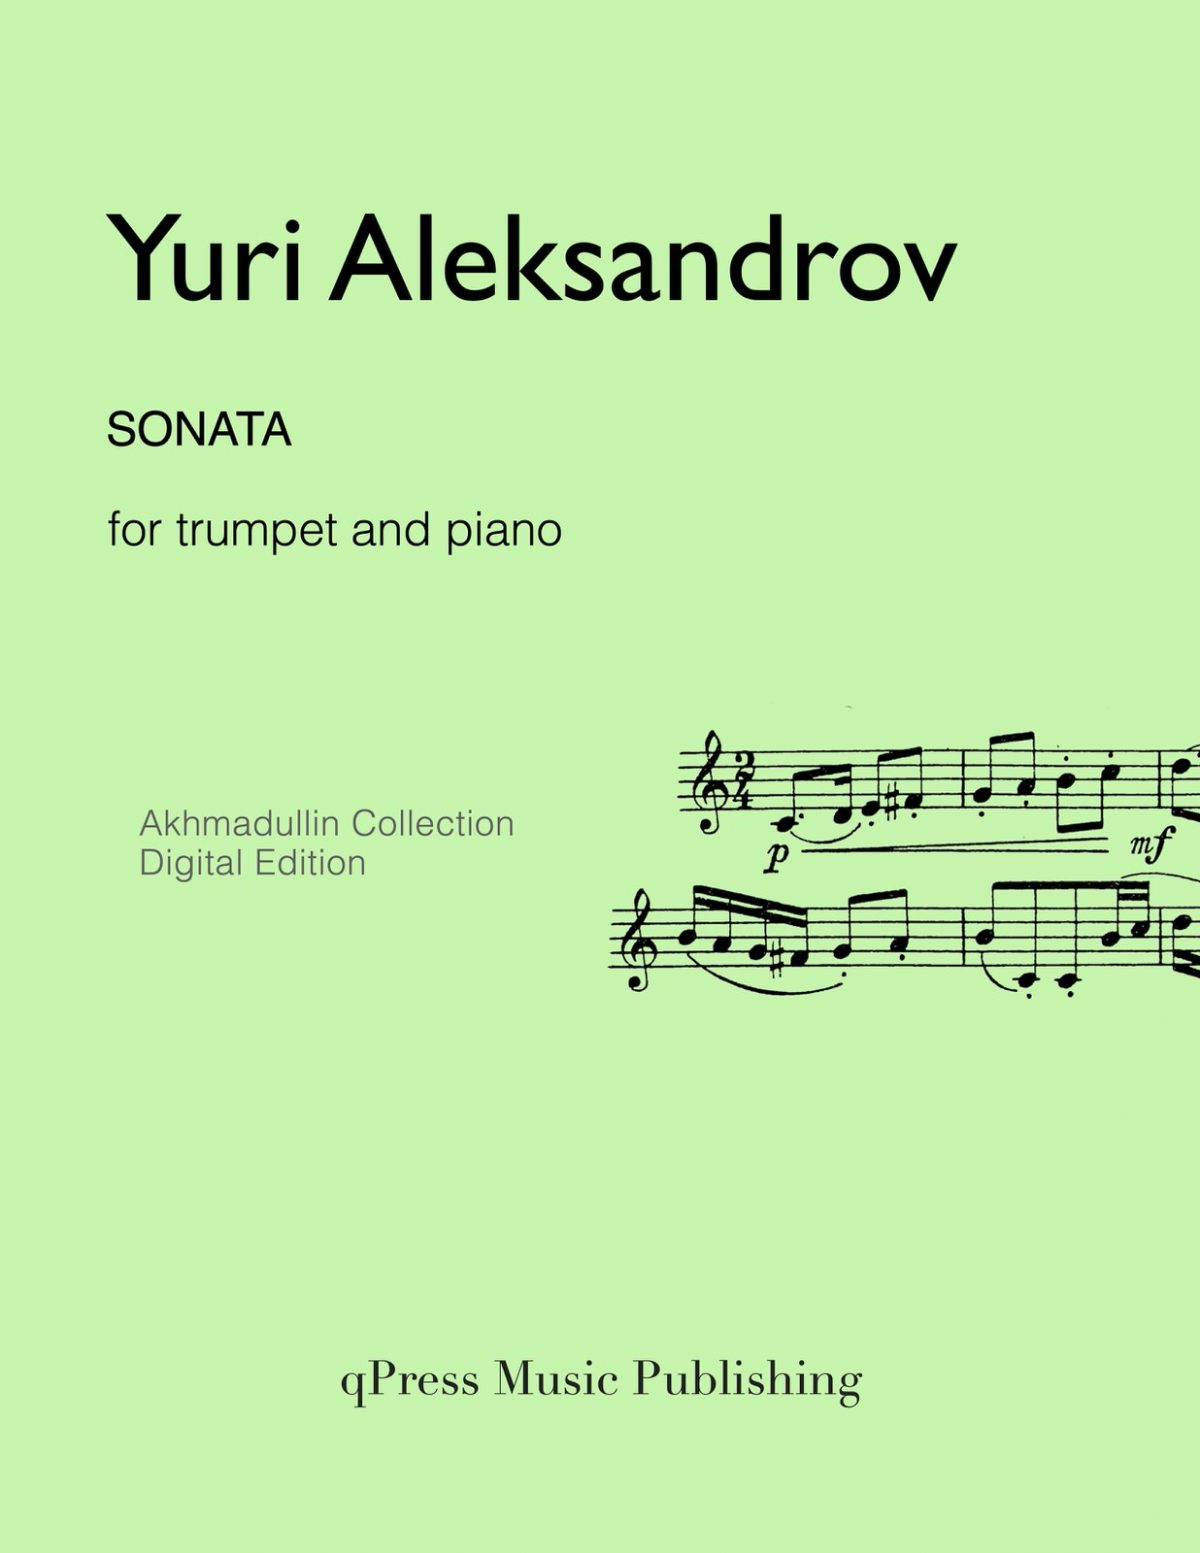 Aleksandrov, Sonata (Score and Part)-p01